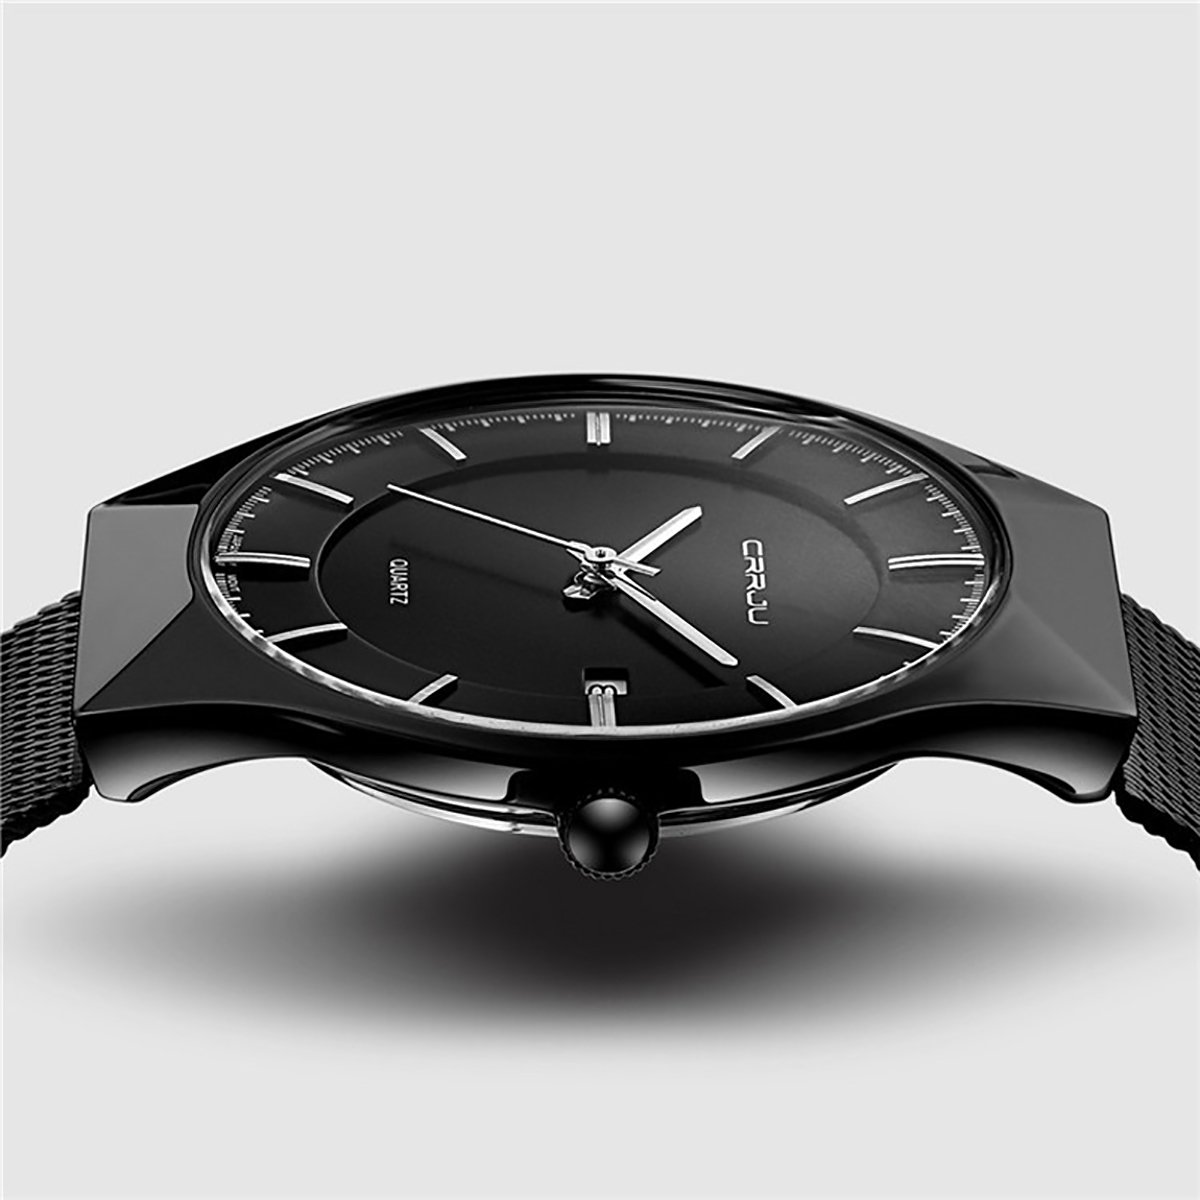 MODIWEN Ultra-Thin Business Men Quartz Watch with Alloy Mesh Band Date Display Wristwatches